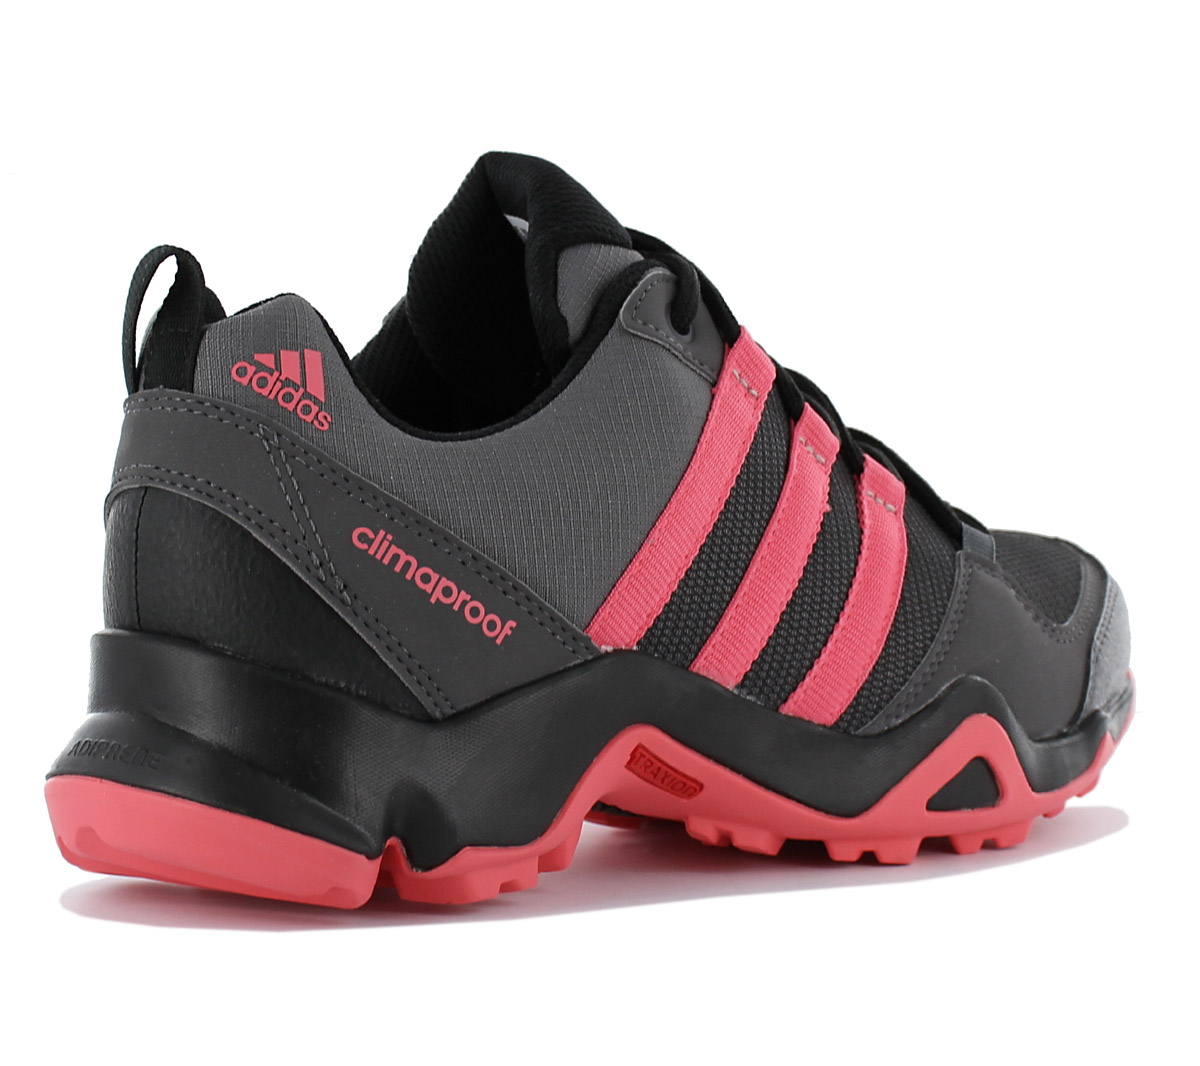 Details about Adidas AX2 Climaproof W Women's Hiking Trail Running Shoes  Outdoor BB1681 Ax 2